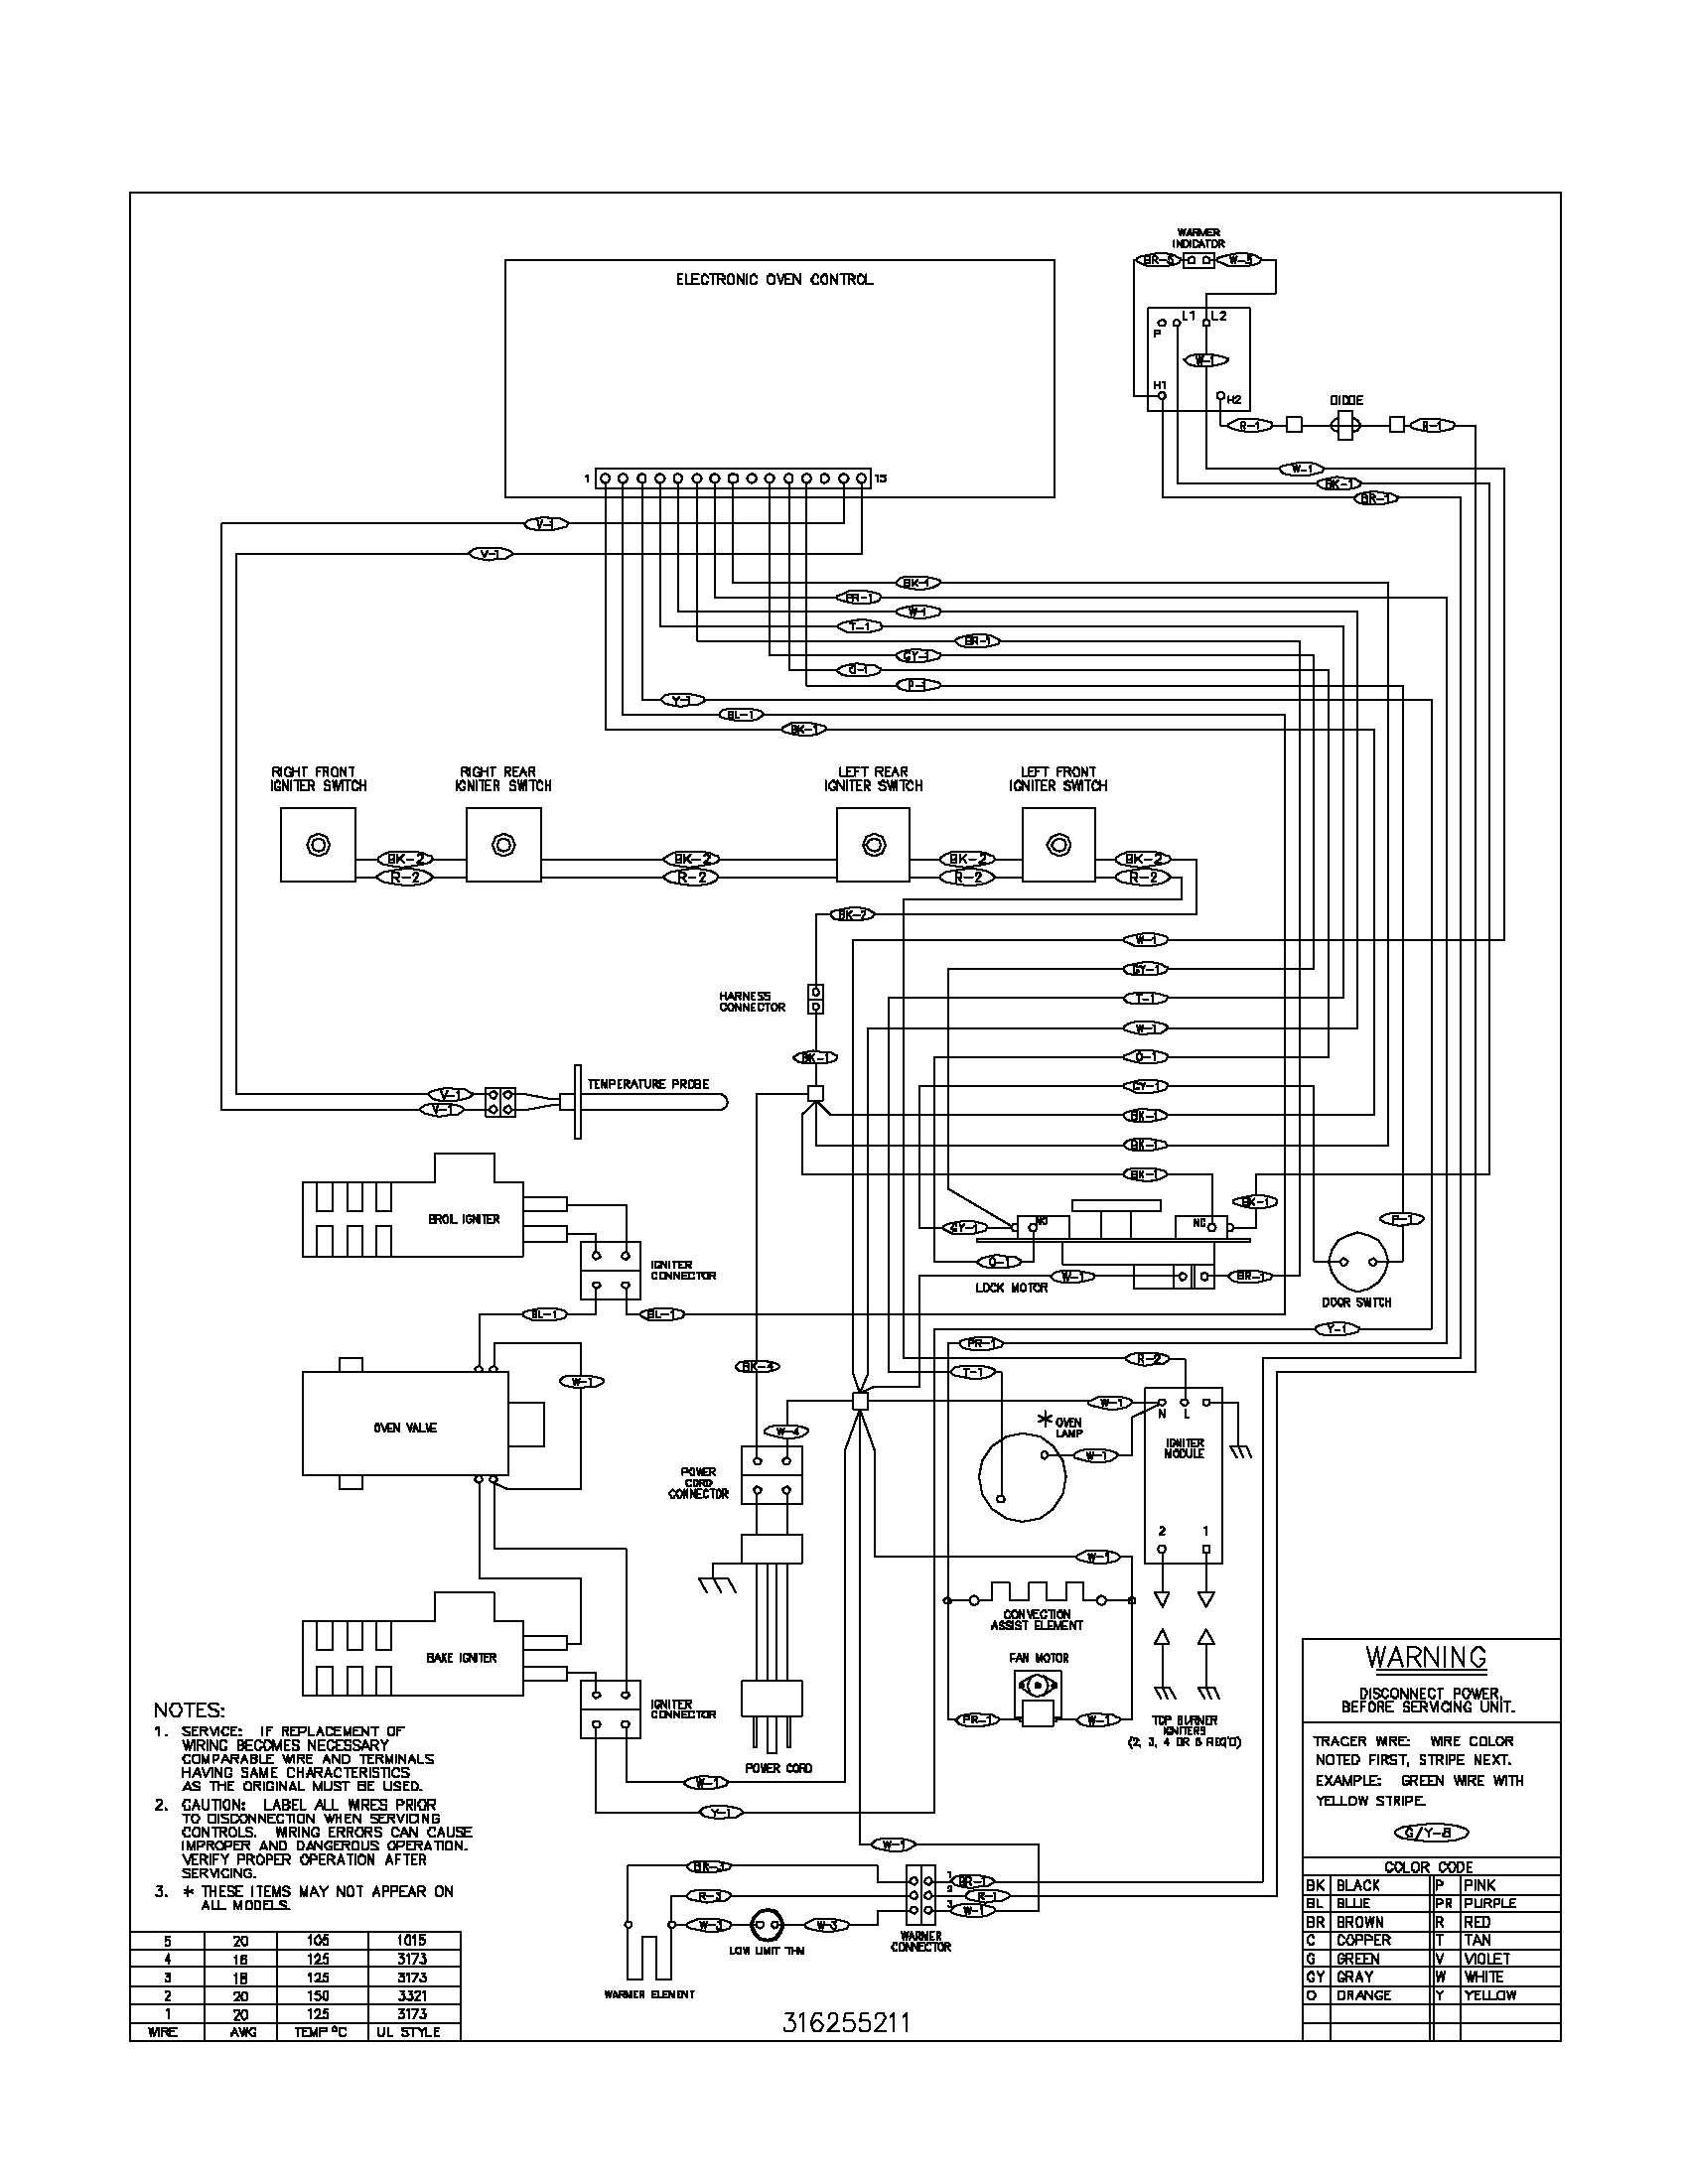 whirlpool washer control board wiring diagram smart wiring diagrams \u2022 whirlpool wiring schematic frigidaire washing machine wiring diagram library of wiring diagram u2022 rh jessascott co whirlpool washing diagrams whirlpool washing diagrams